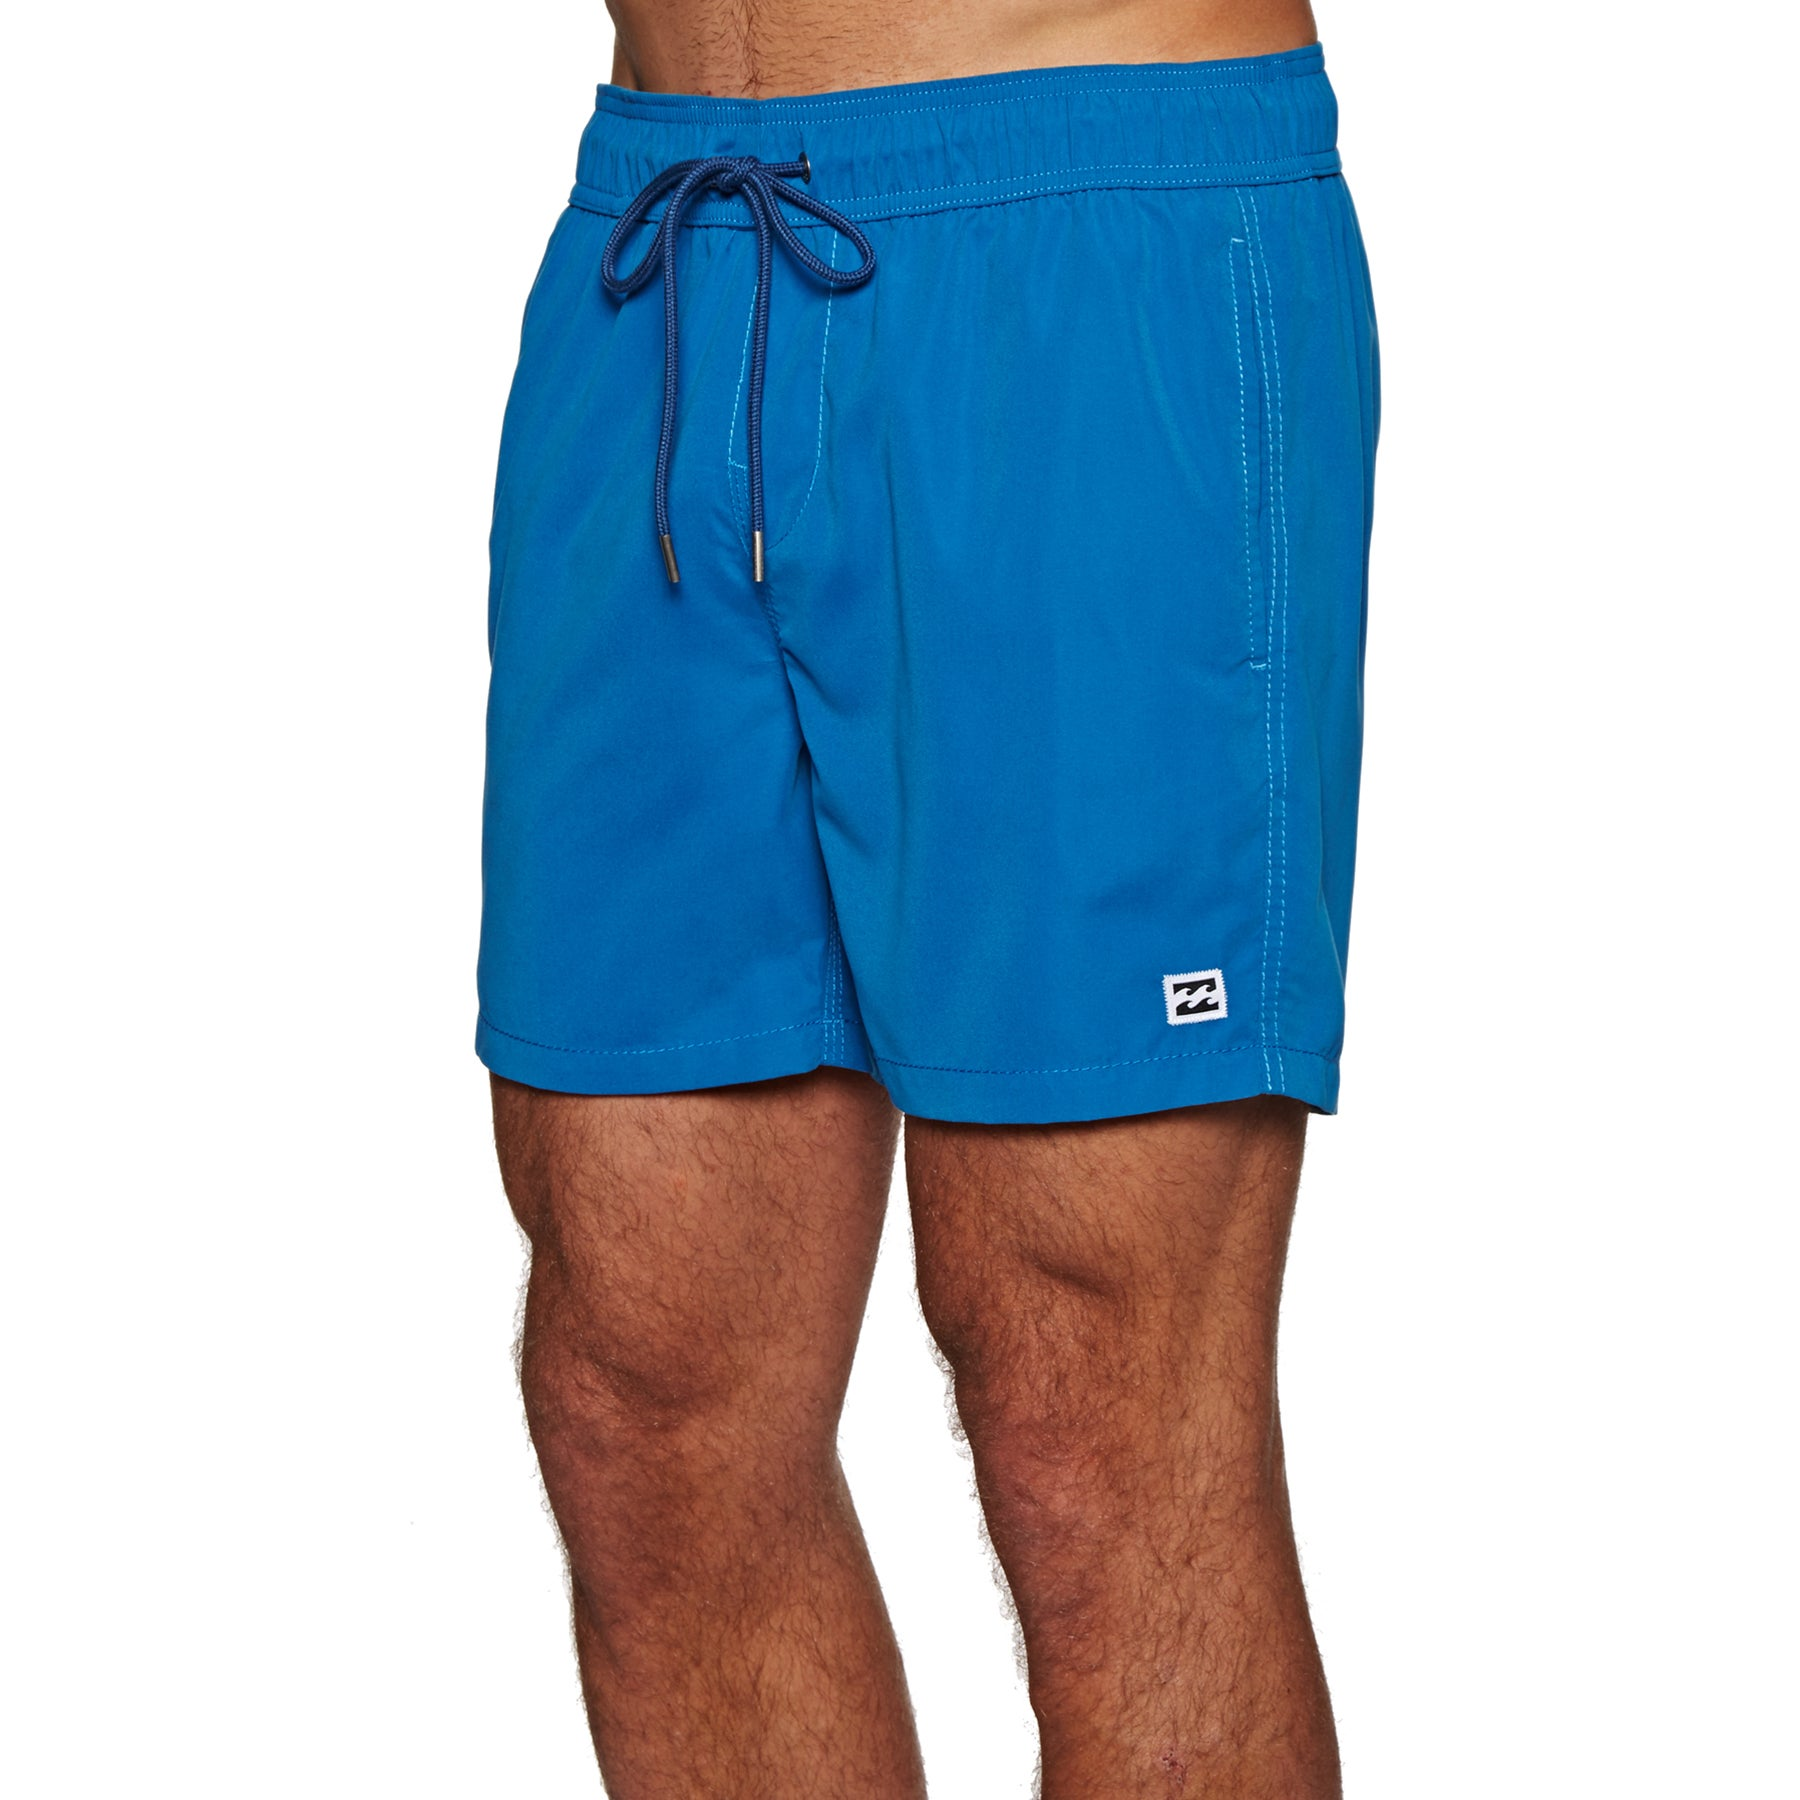 Boardshort Billabong All Day LB - Royal